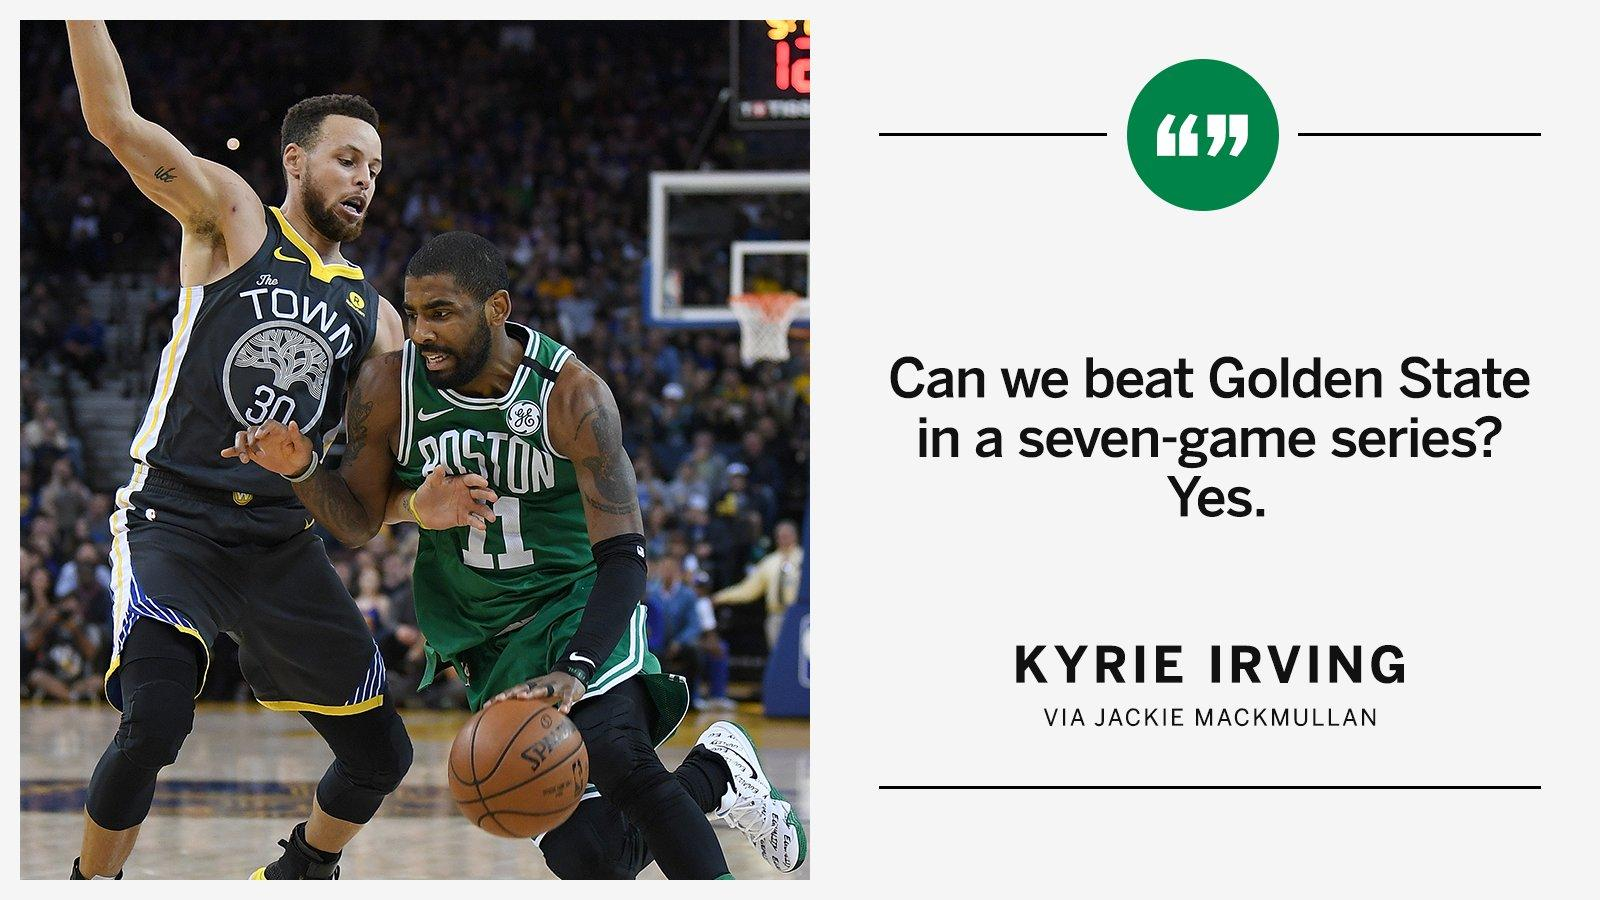 Kyrie Irving is ready to take on the juggernaut. https://t.co/RbrITz63xX